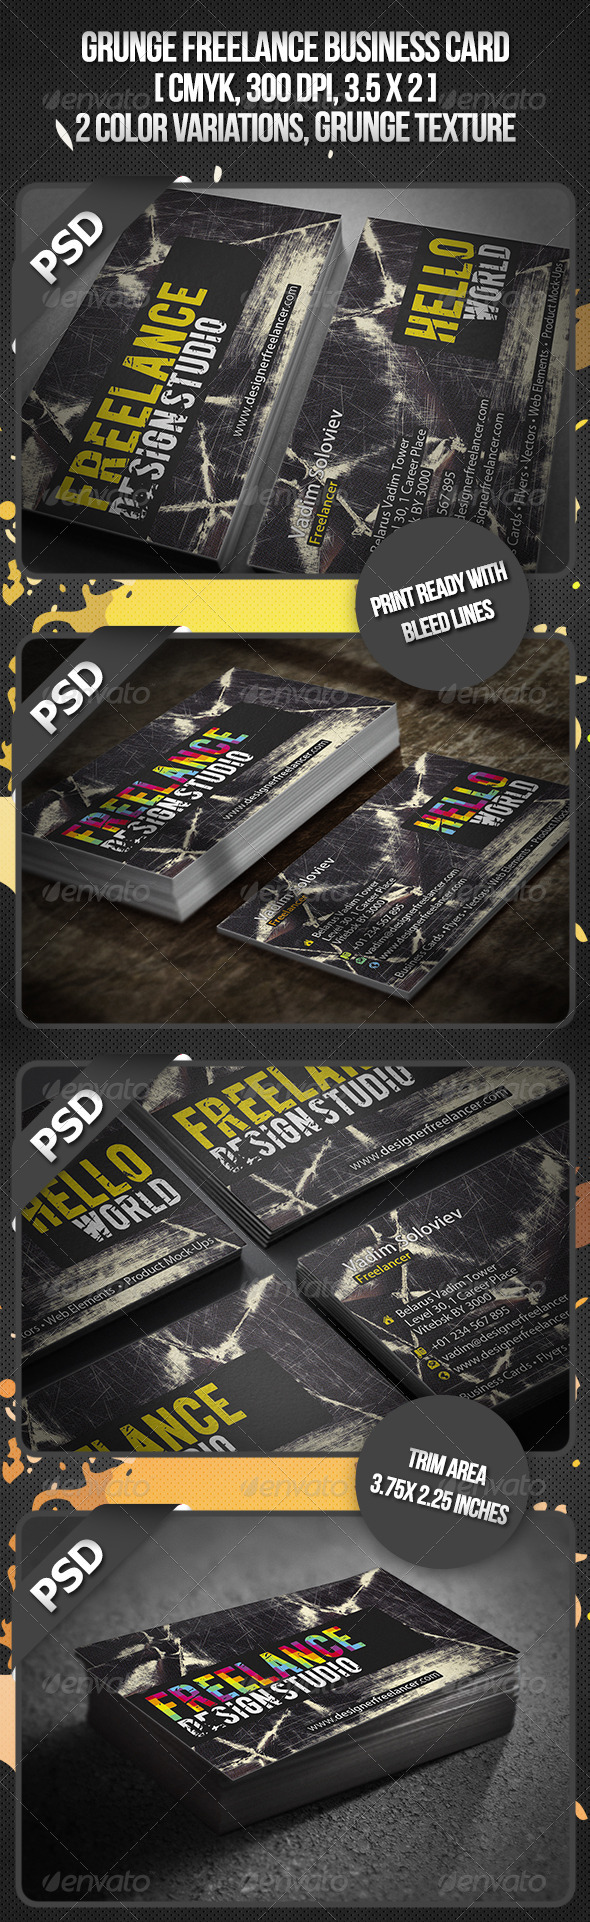 Grunge Freelance Business Card - Grunge Business Cards